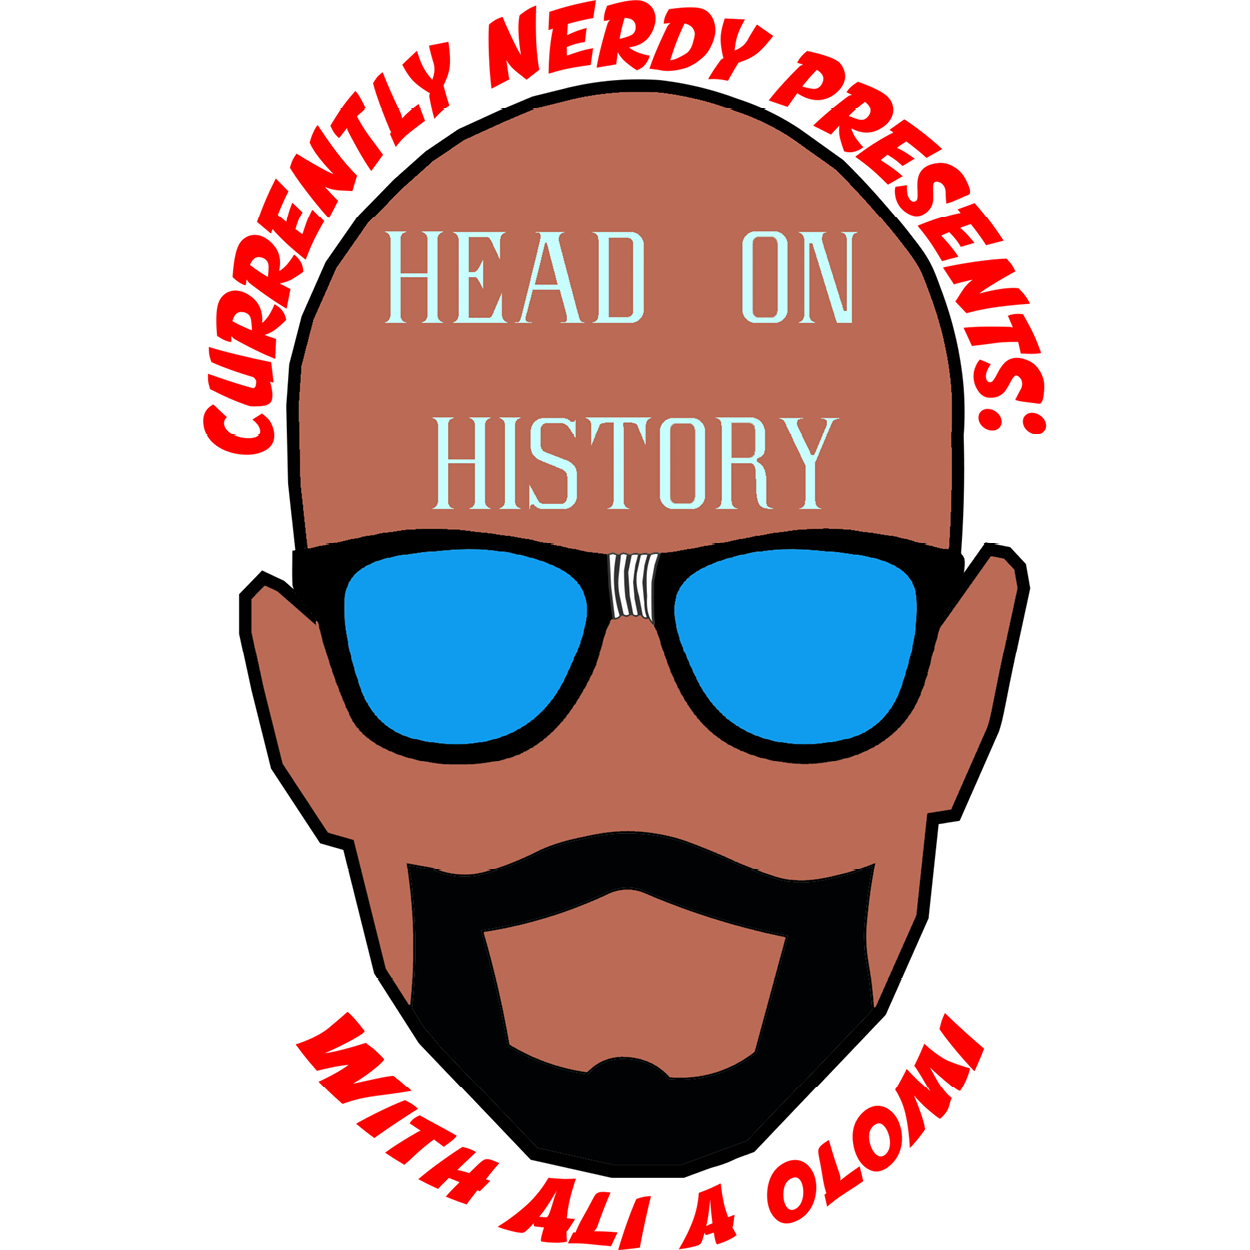 Head on History logo